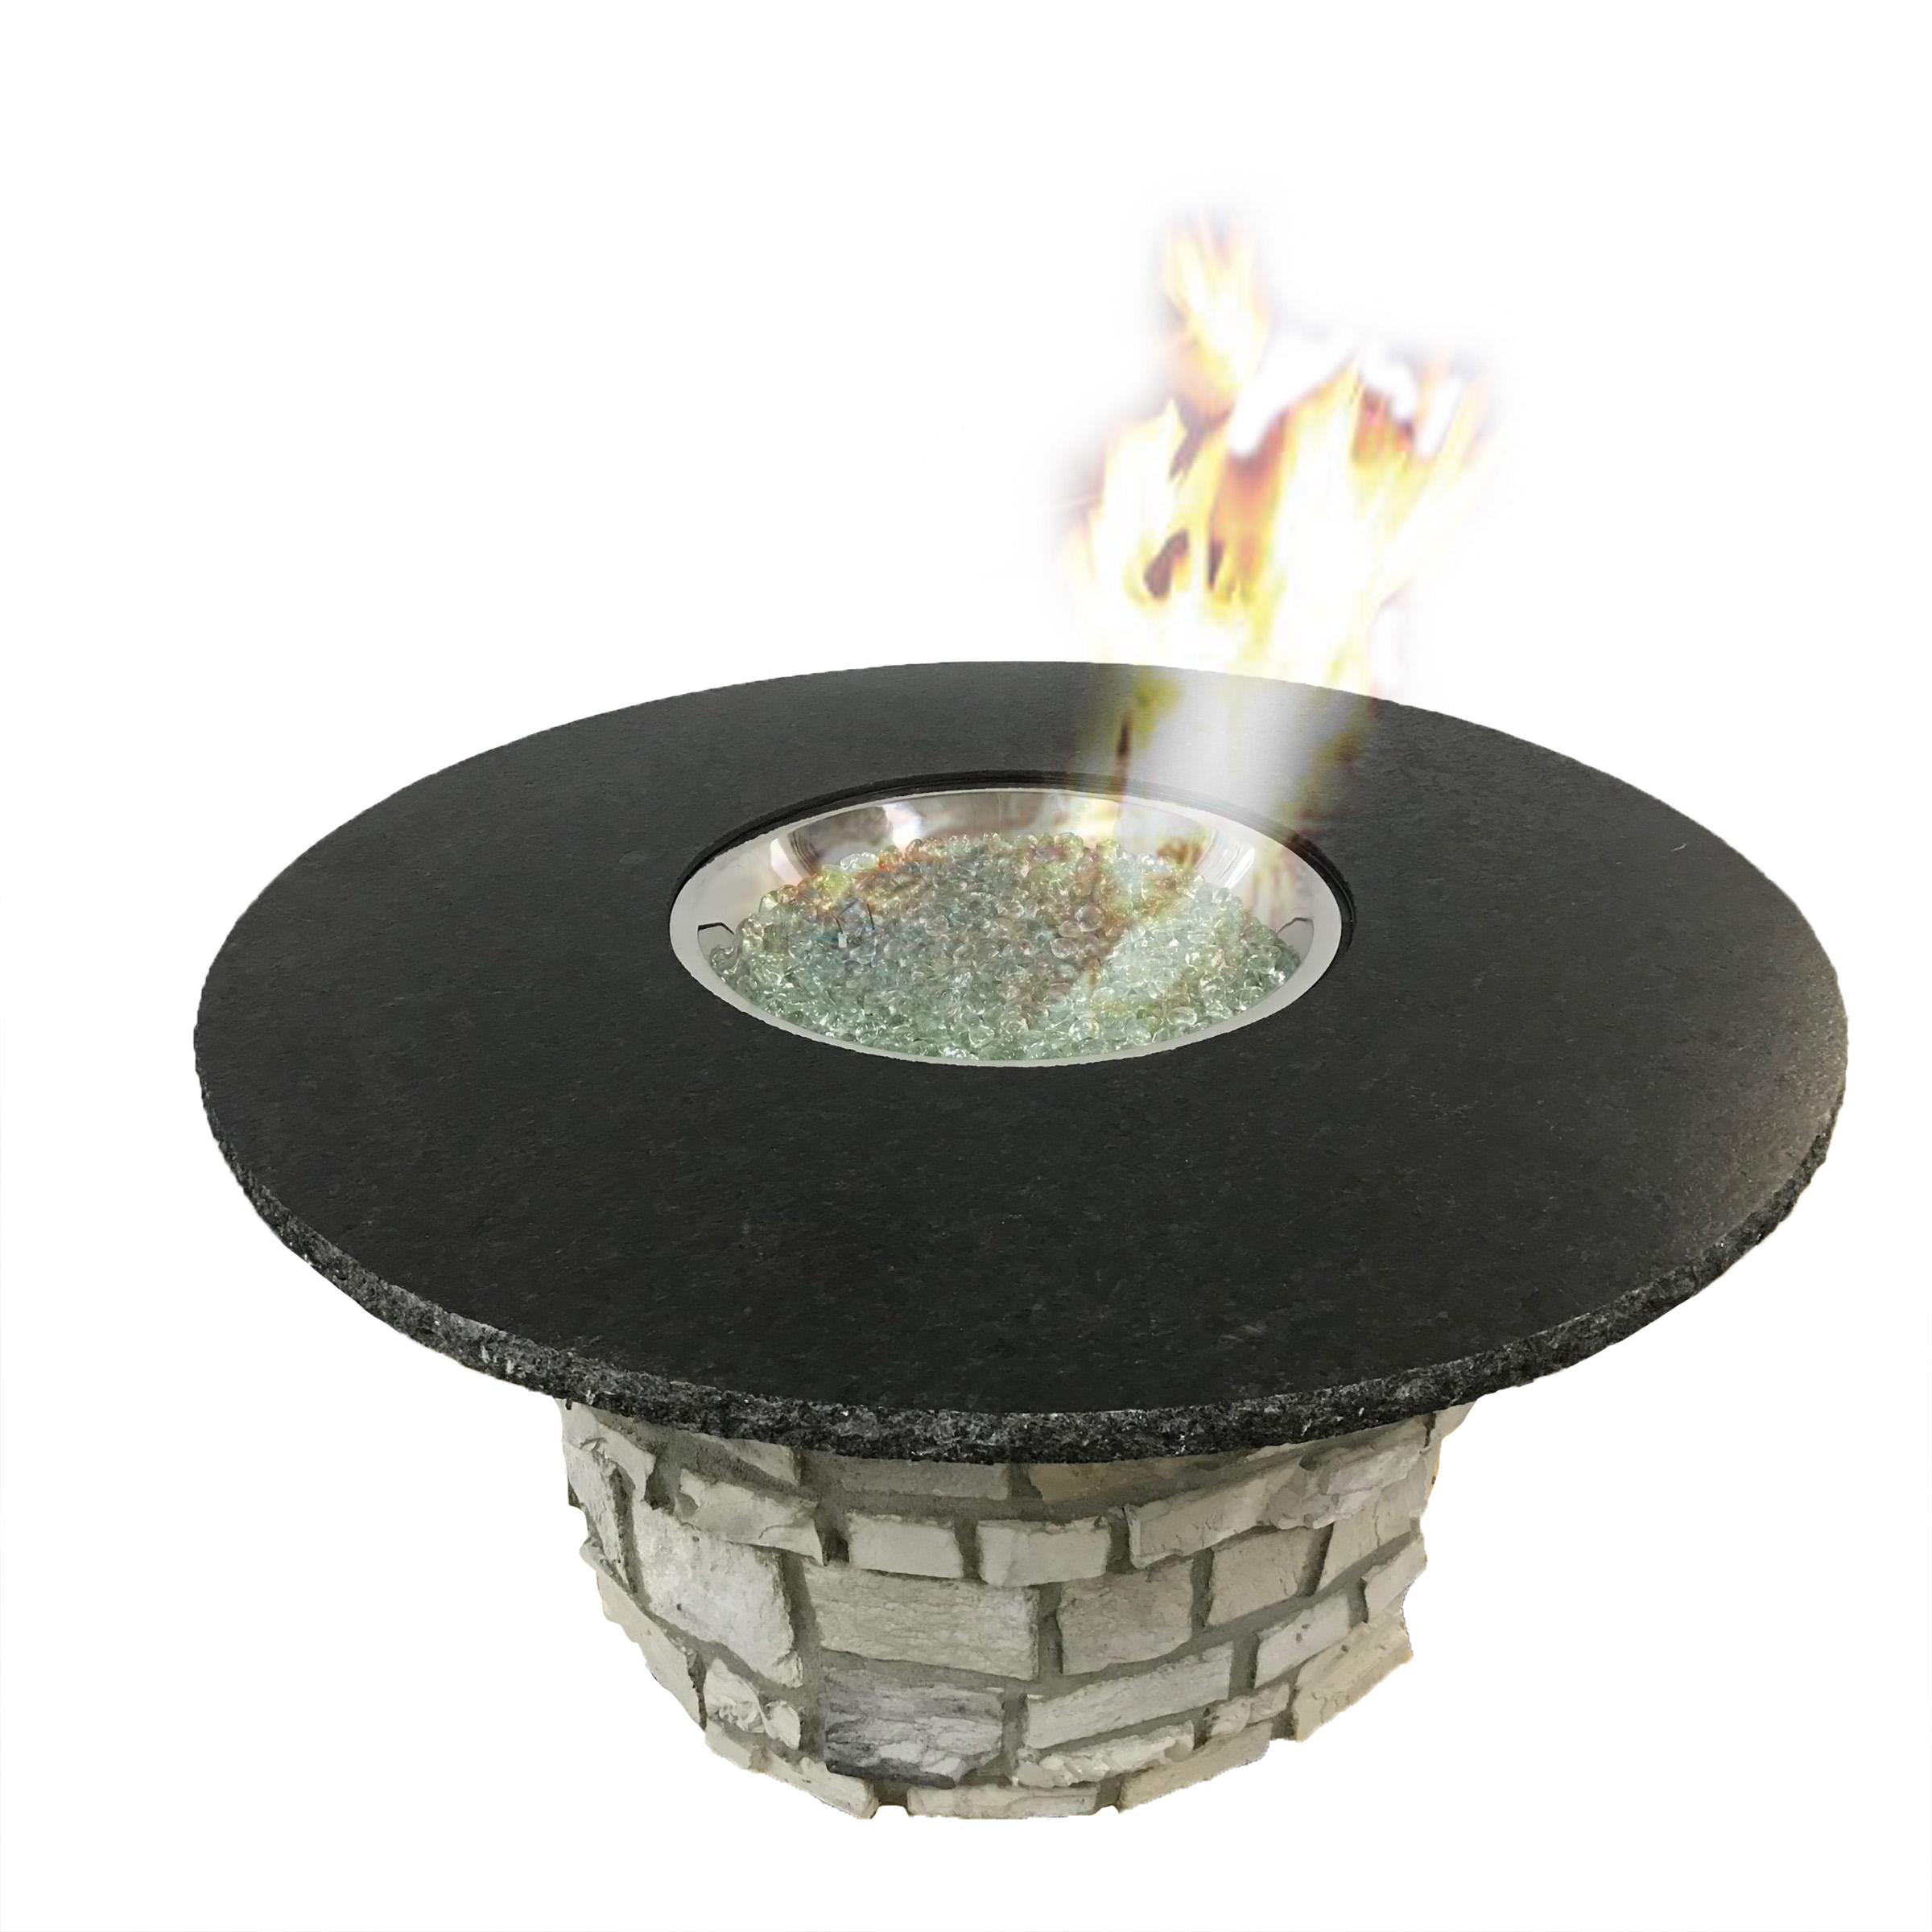 GraniteTopFirepit_BlackLeather_42in_48in_IMG_0582_withFlame.jpg